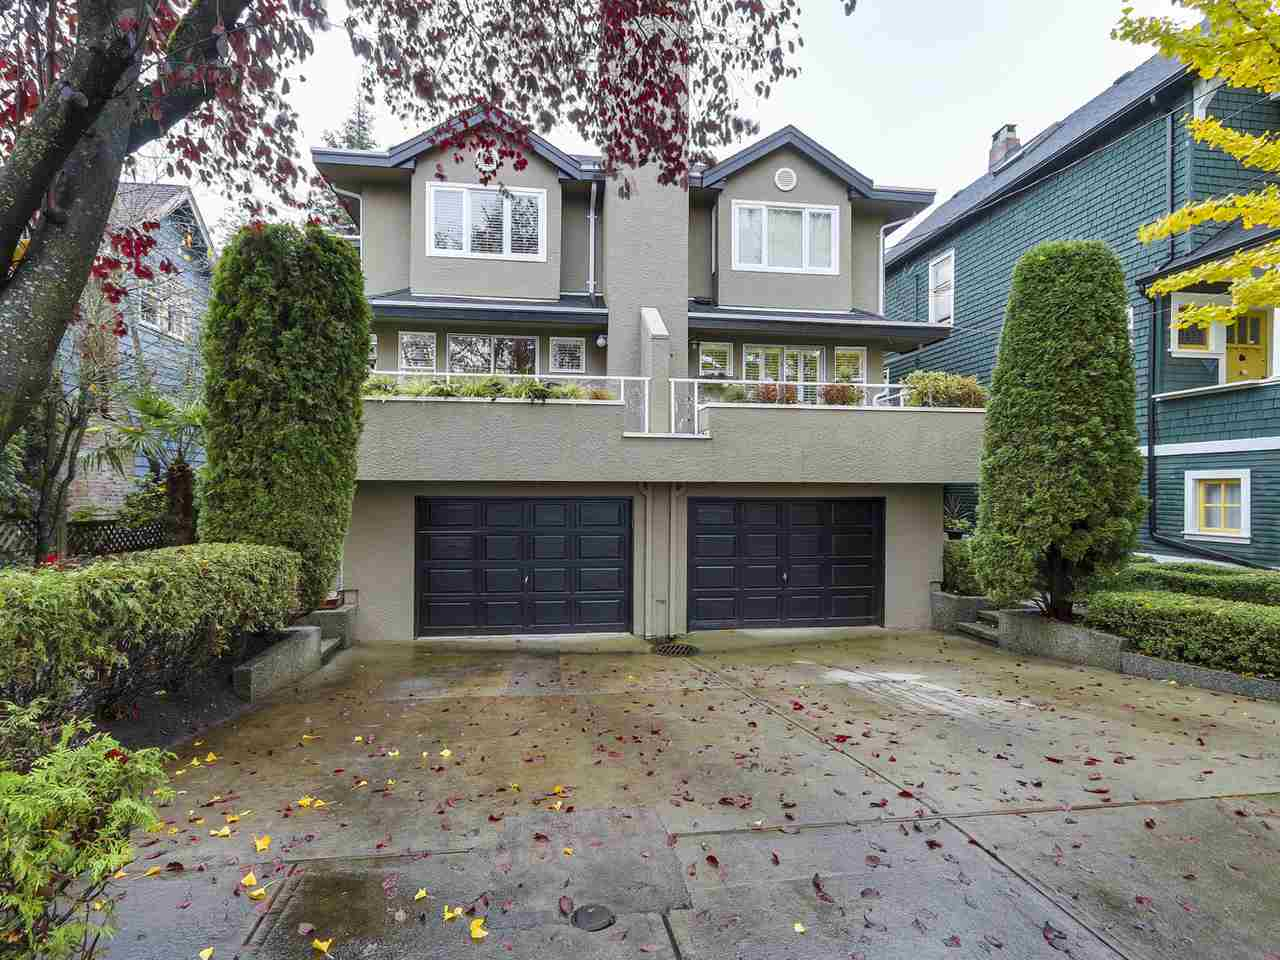 Photo 19: 2863 W 6TH AVENUE in Vancouver: Kitsilano House 1/2 Duplex for sale (Vancouver West)  : MLS(r) # R2138450